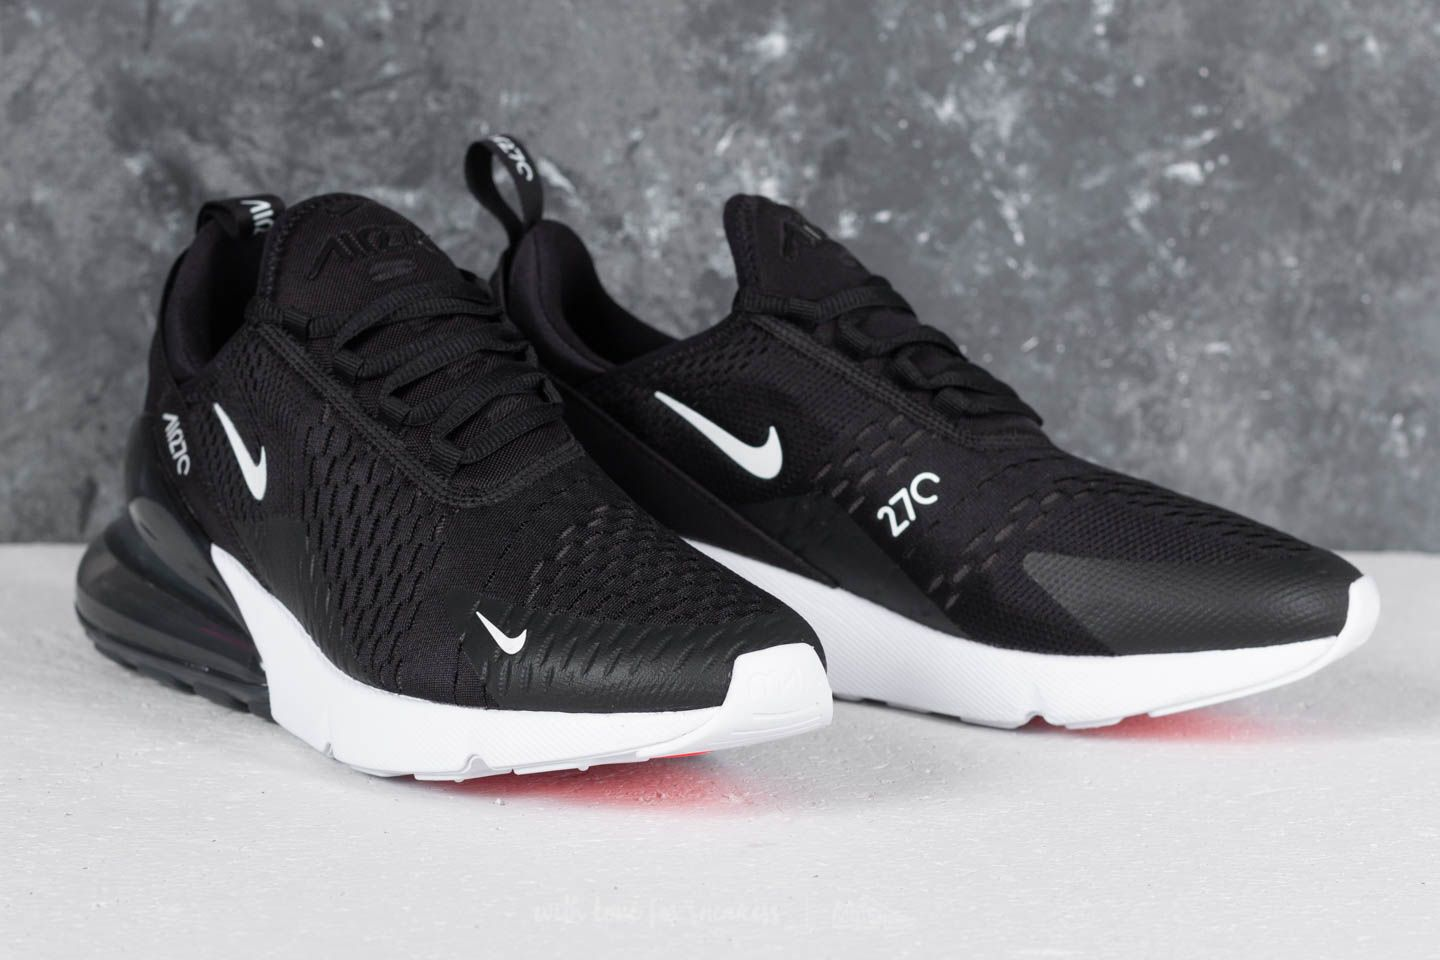 Nike Air Max 270 Black  Anthracite-White-Solar Red at a great price e13d227ab0